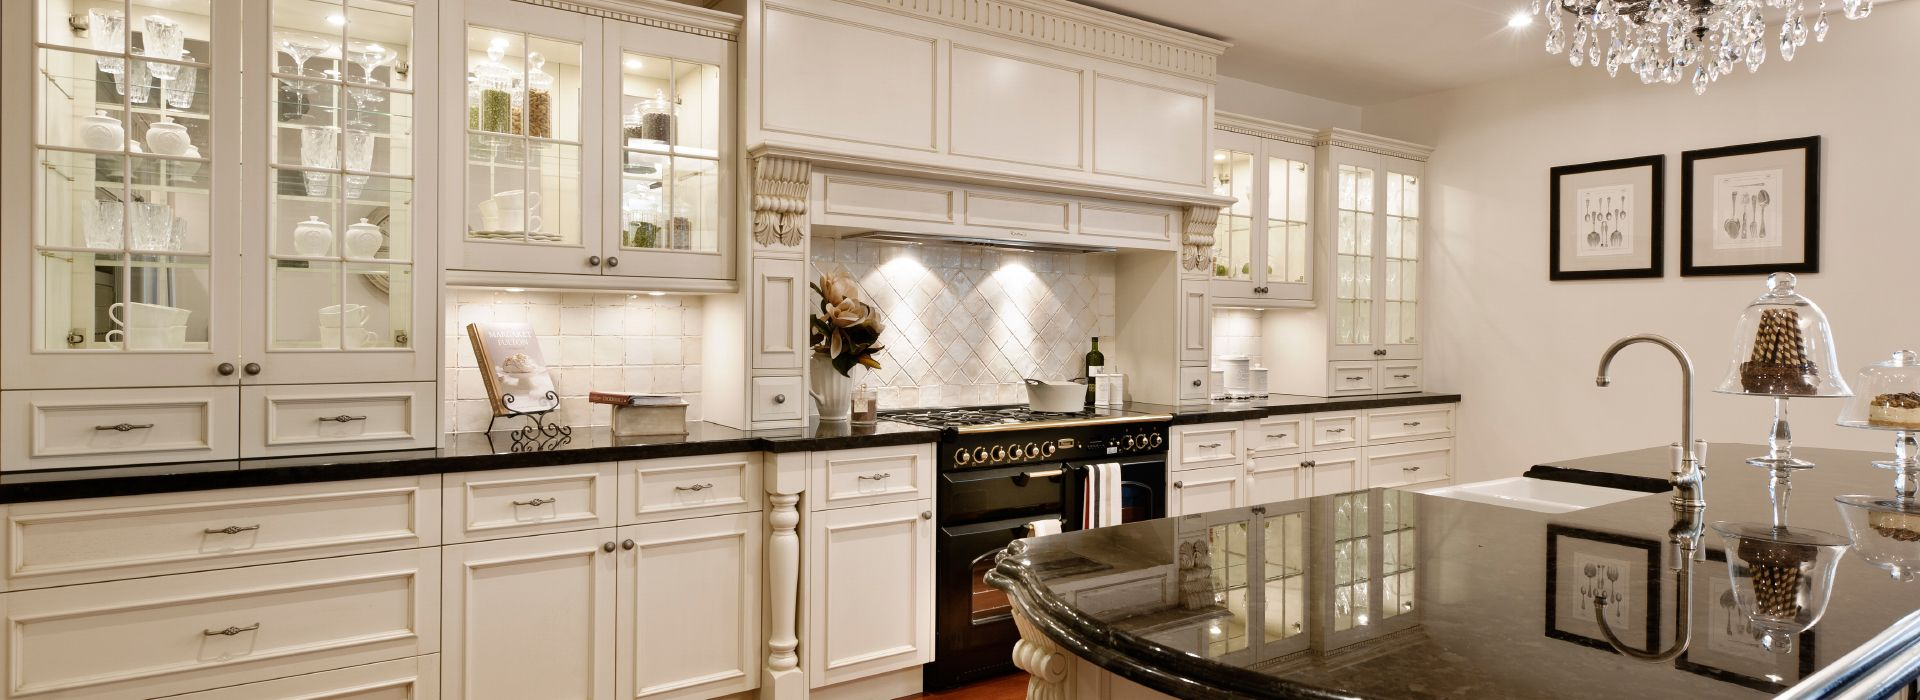 Contemporary kitchen cabinet door styles for Parisian style kitchen ideas